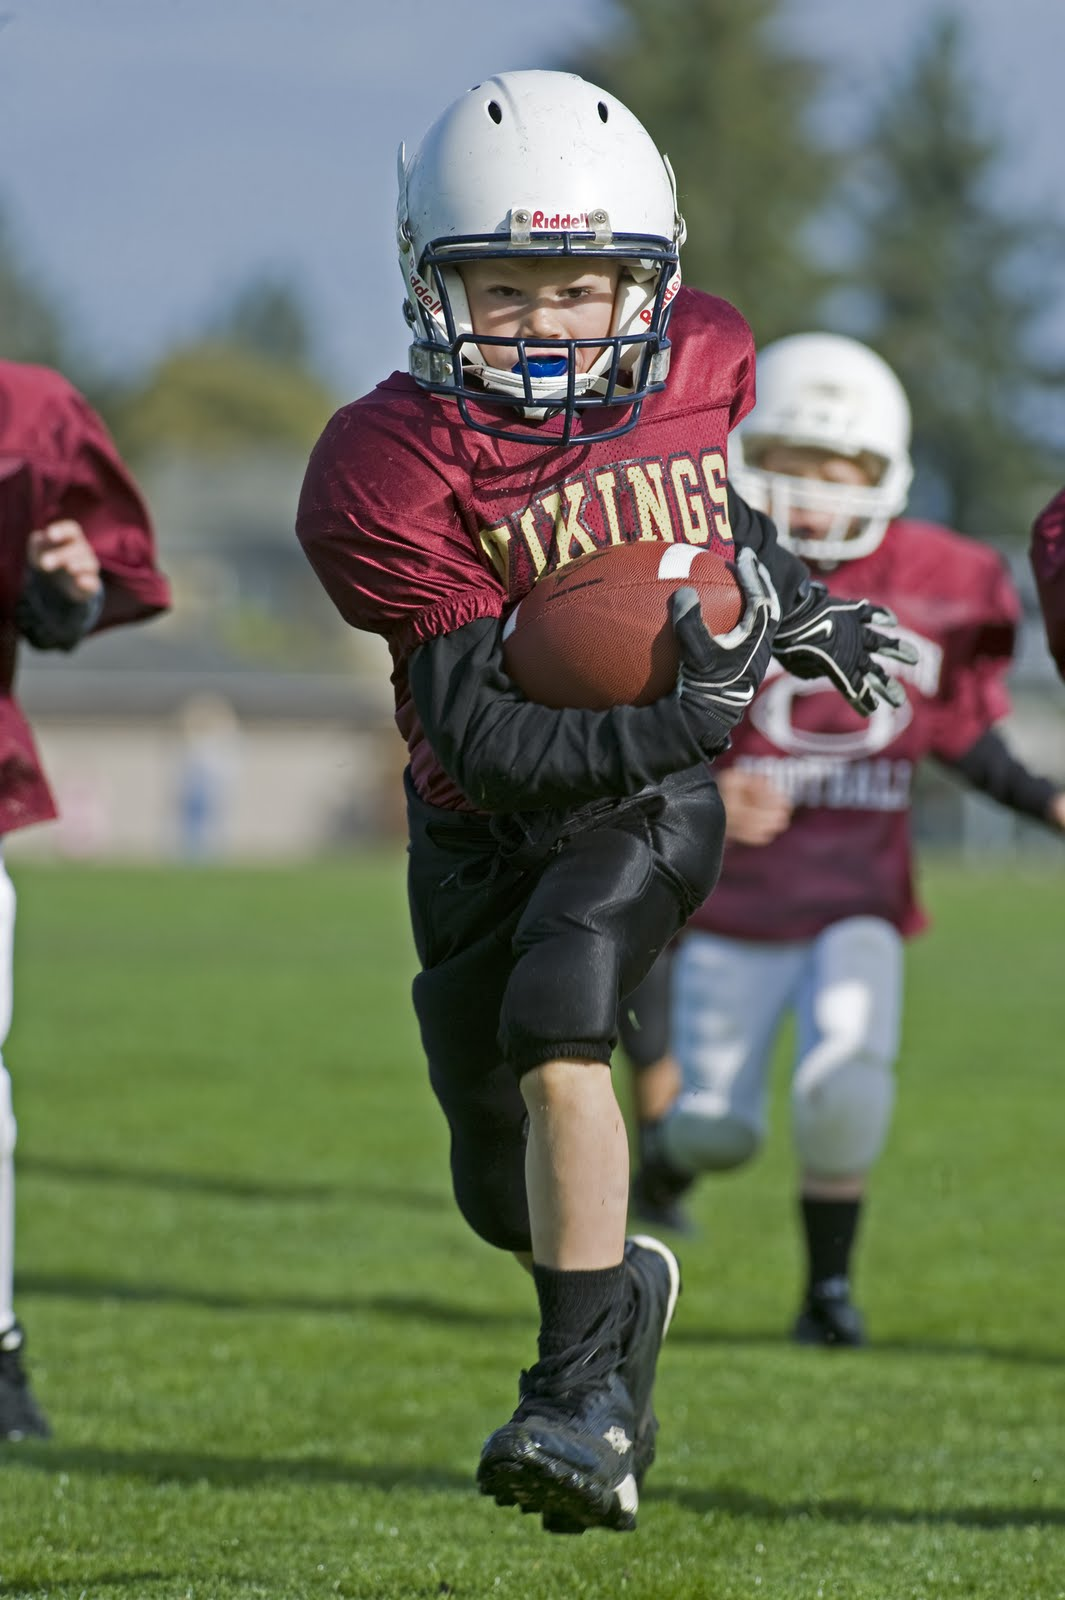 Midget football photo